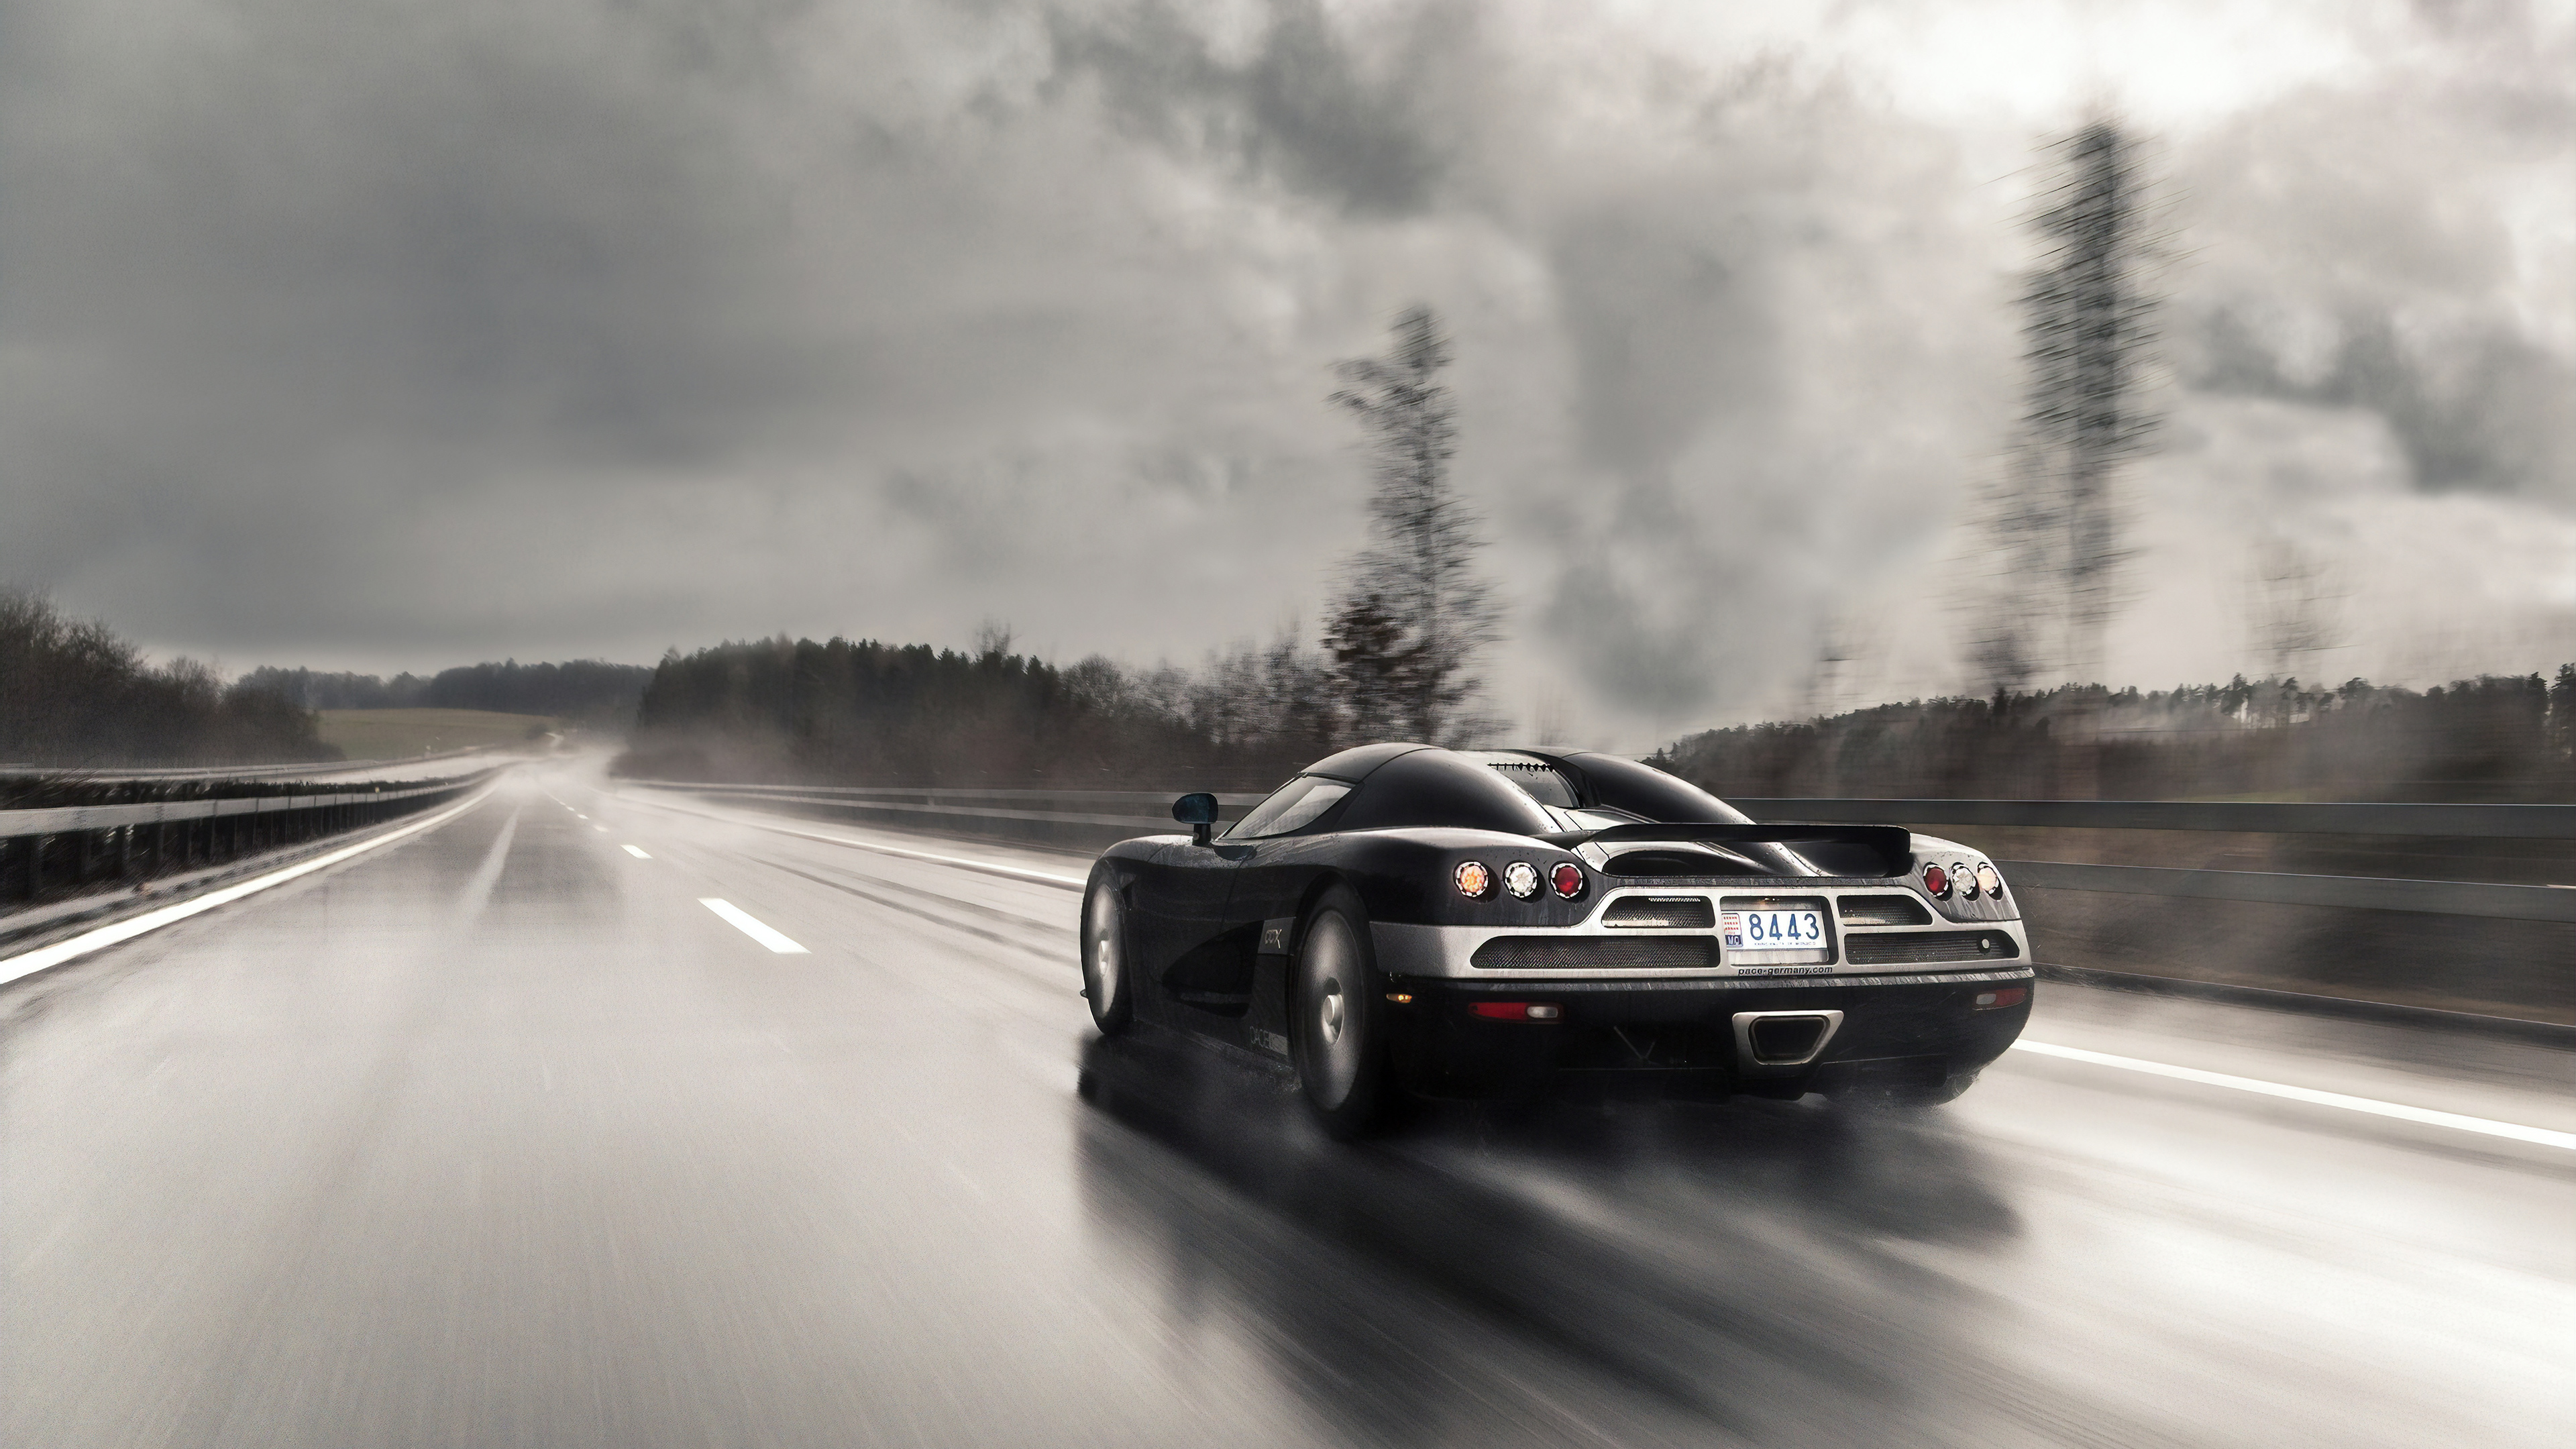 koenigsegg on wet roads 1562107983 - Koenigsegg On Wet Roads - koenigsegg agera wallpapers, hd-wallpapers, cars wallpapers, 4k-wallpapers